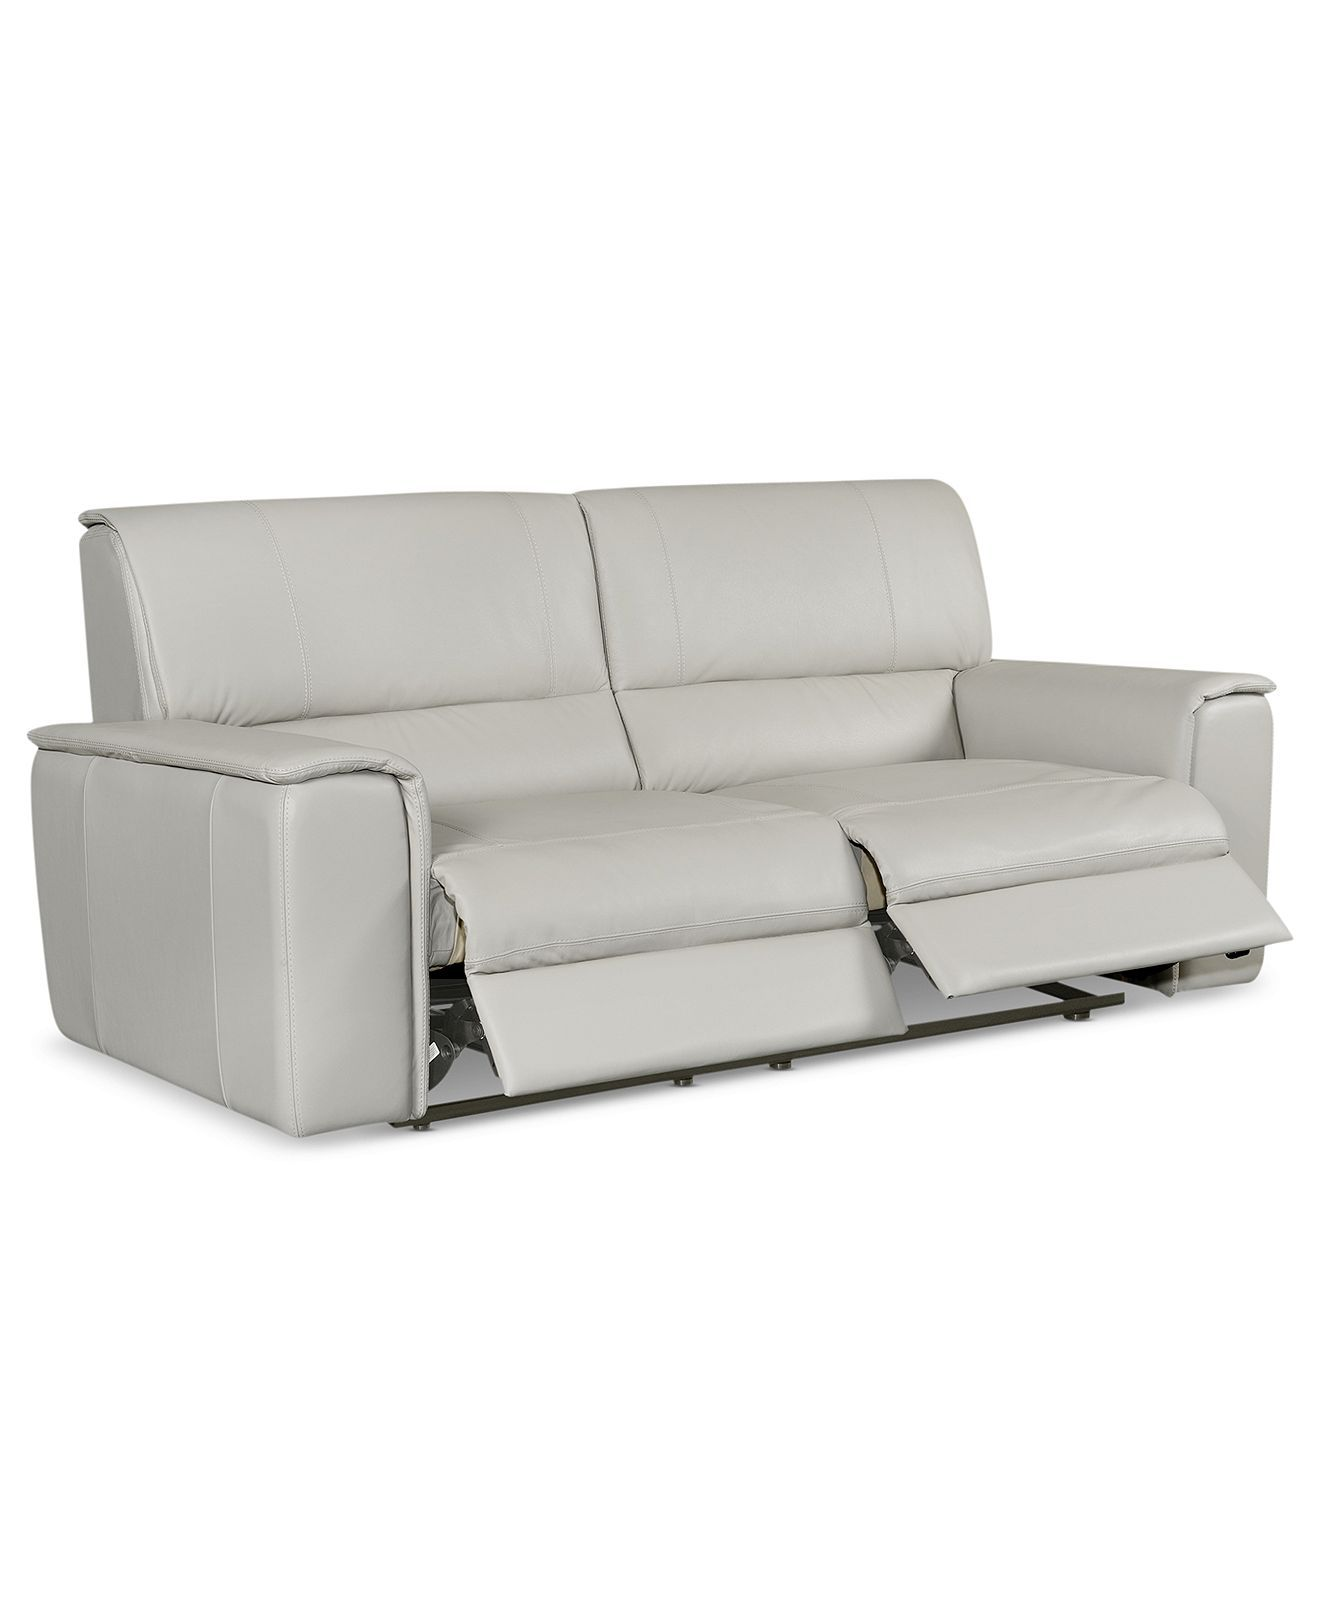 Deion Leather Reclining Sofa, Power Recliner 84\